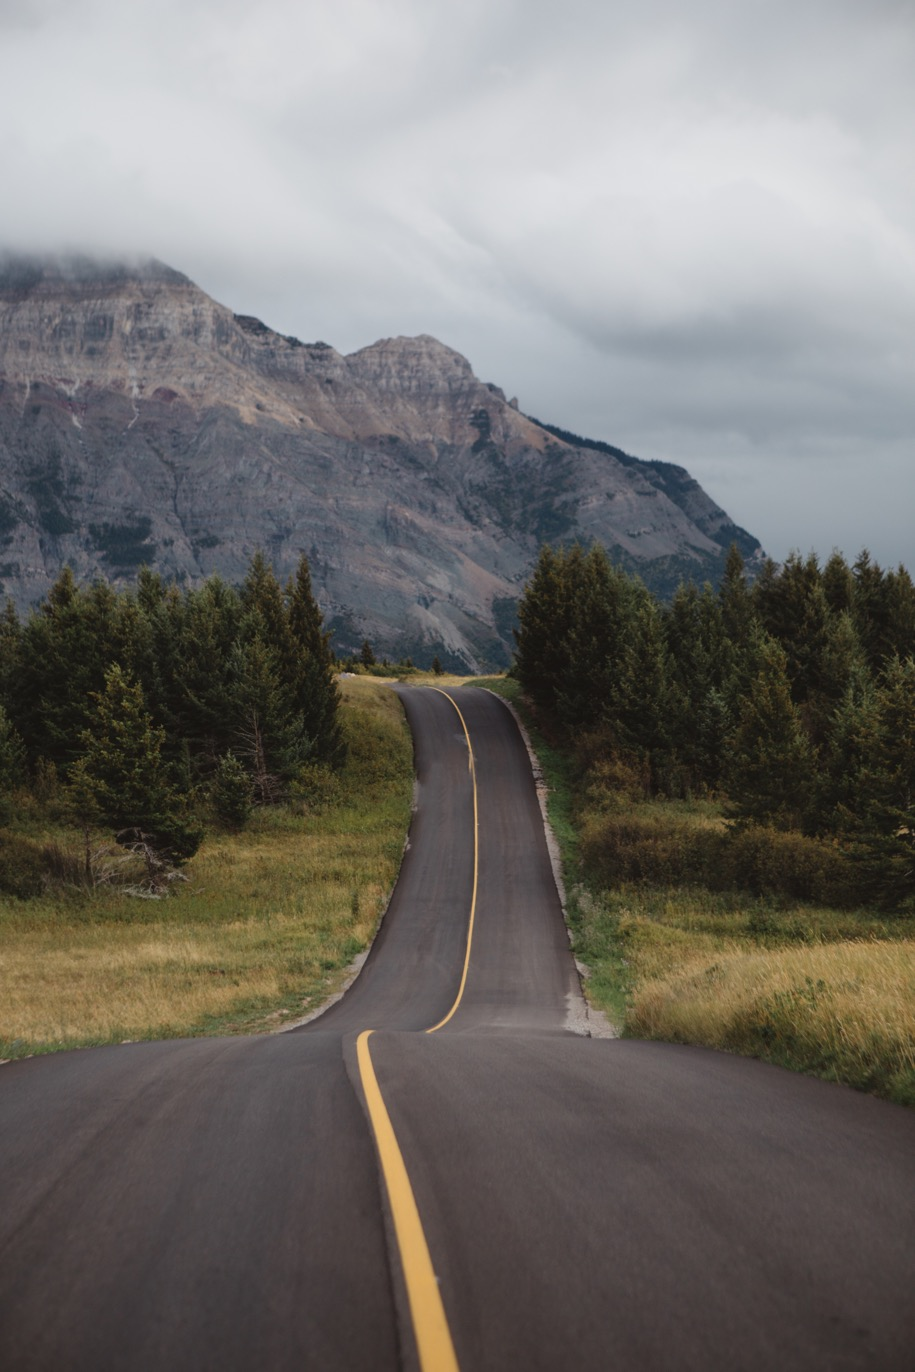 The Roads of Waterton.